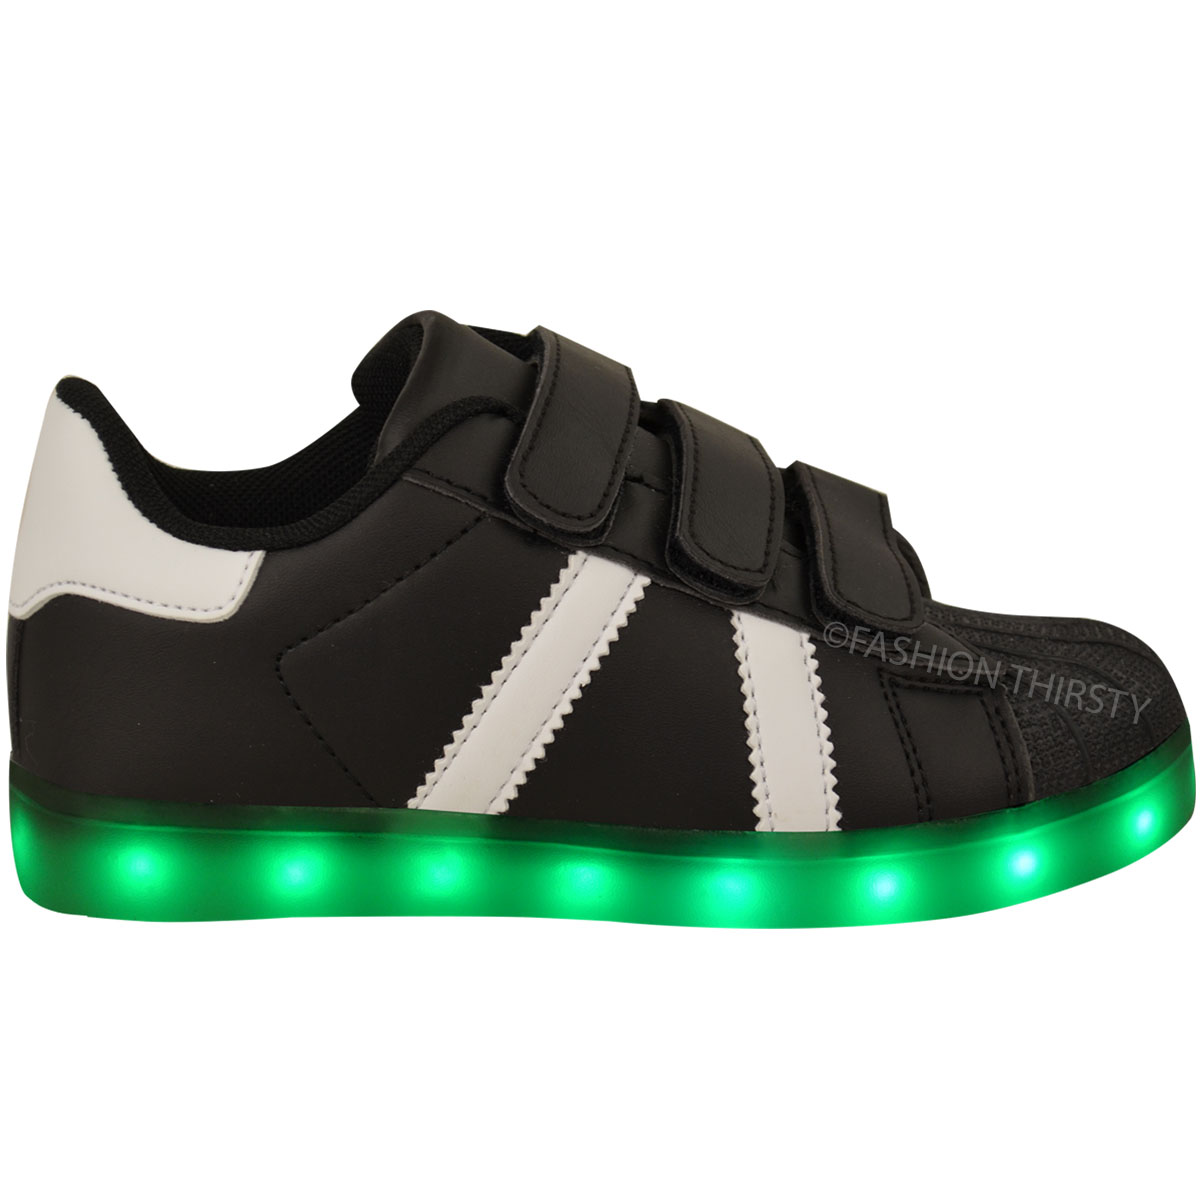 Buy boys trainers with canvas shoes & pumps being a stylish and comfortable option. In a range of designs & colourways. Next day delivery & free returns available.